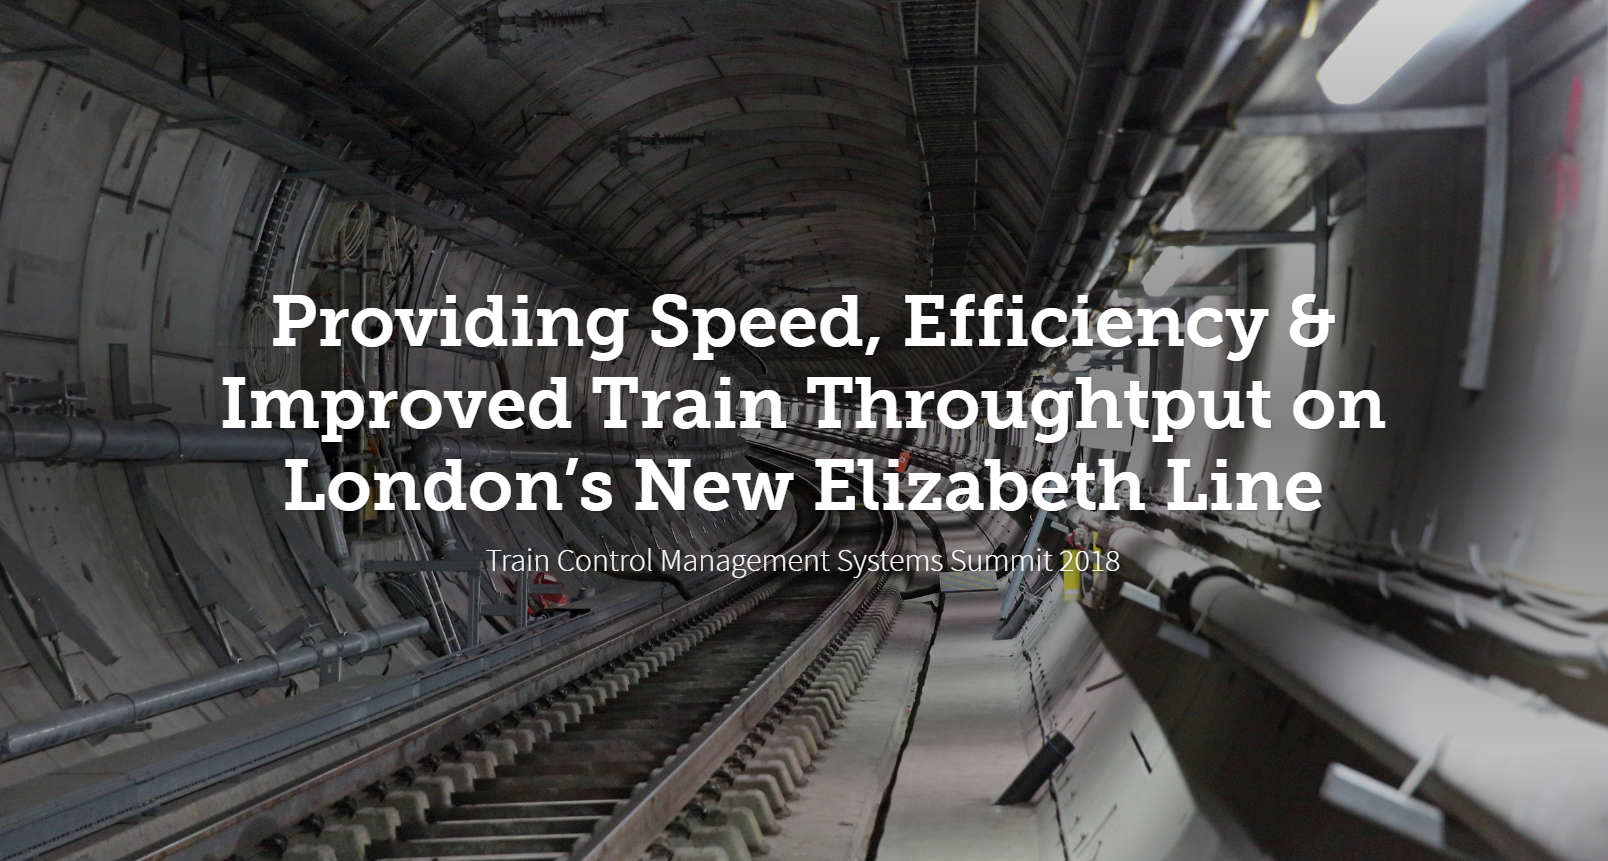 Providing Speed, Efficiency & Improved Train Throughtput on London's New Elizabeth Line